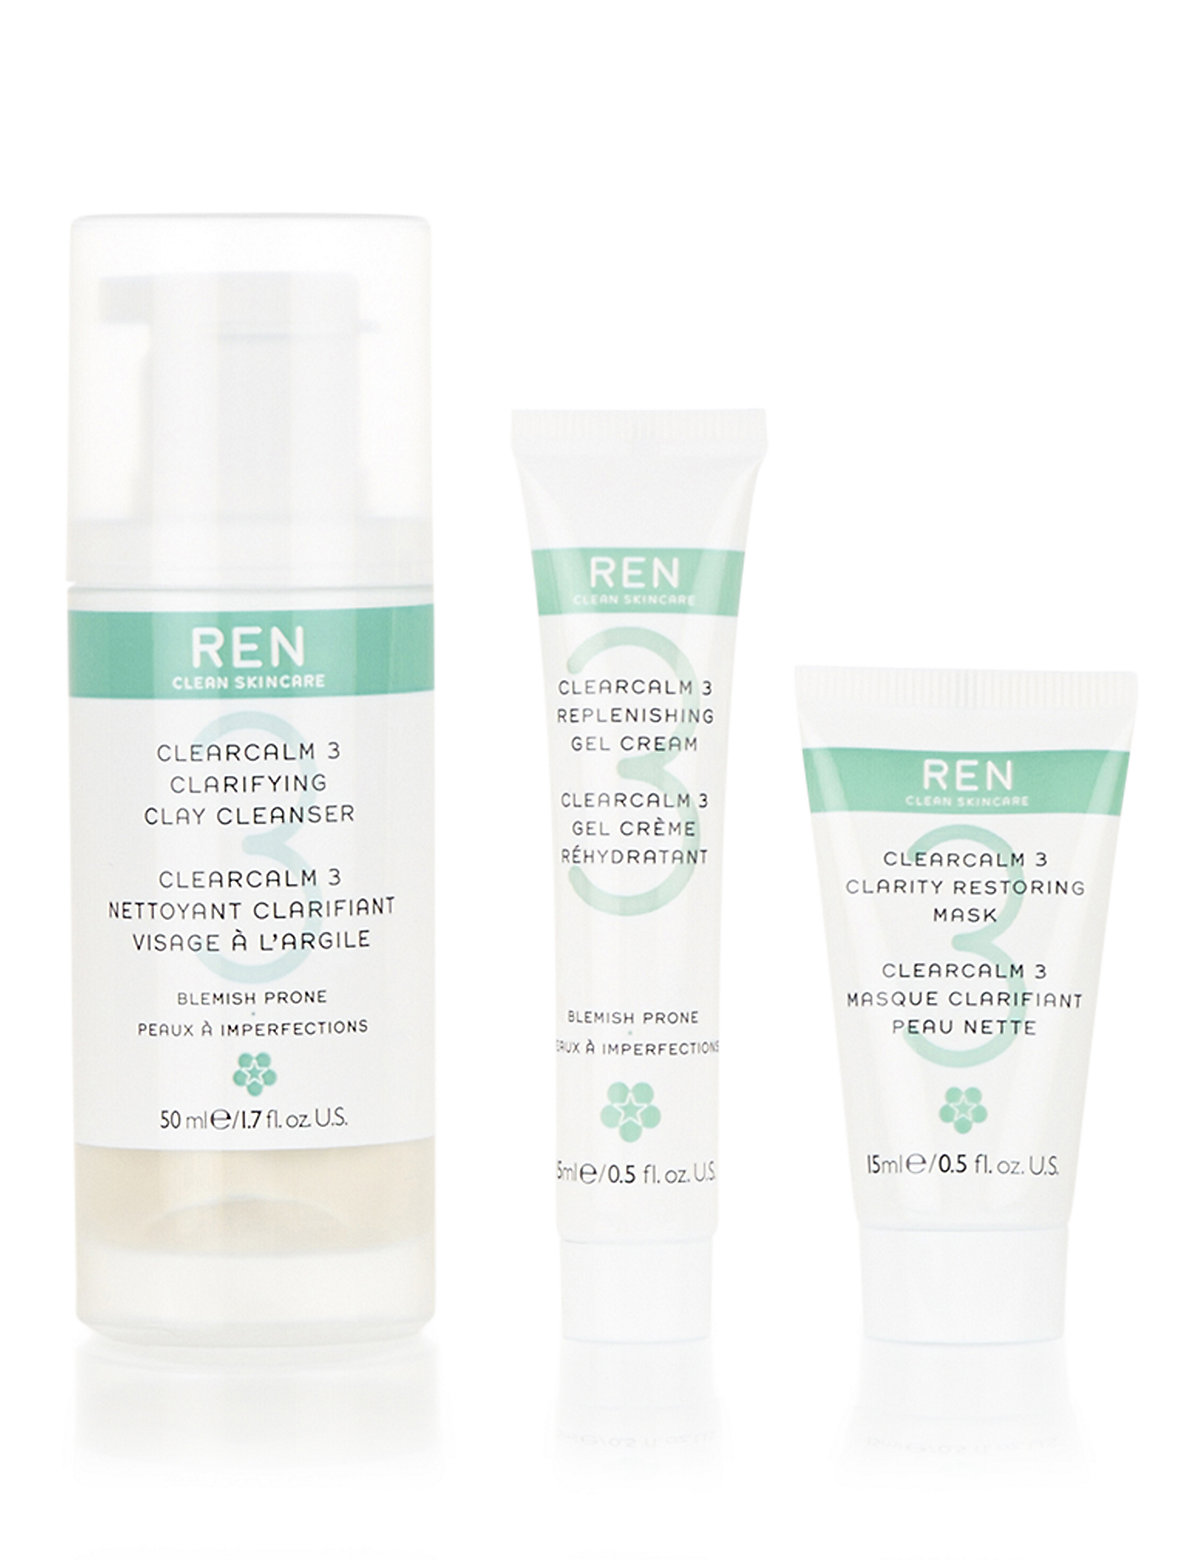 REN Hit The Spot Regime Kit for Blemish Prone Skin Worth £23.00